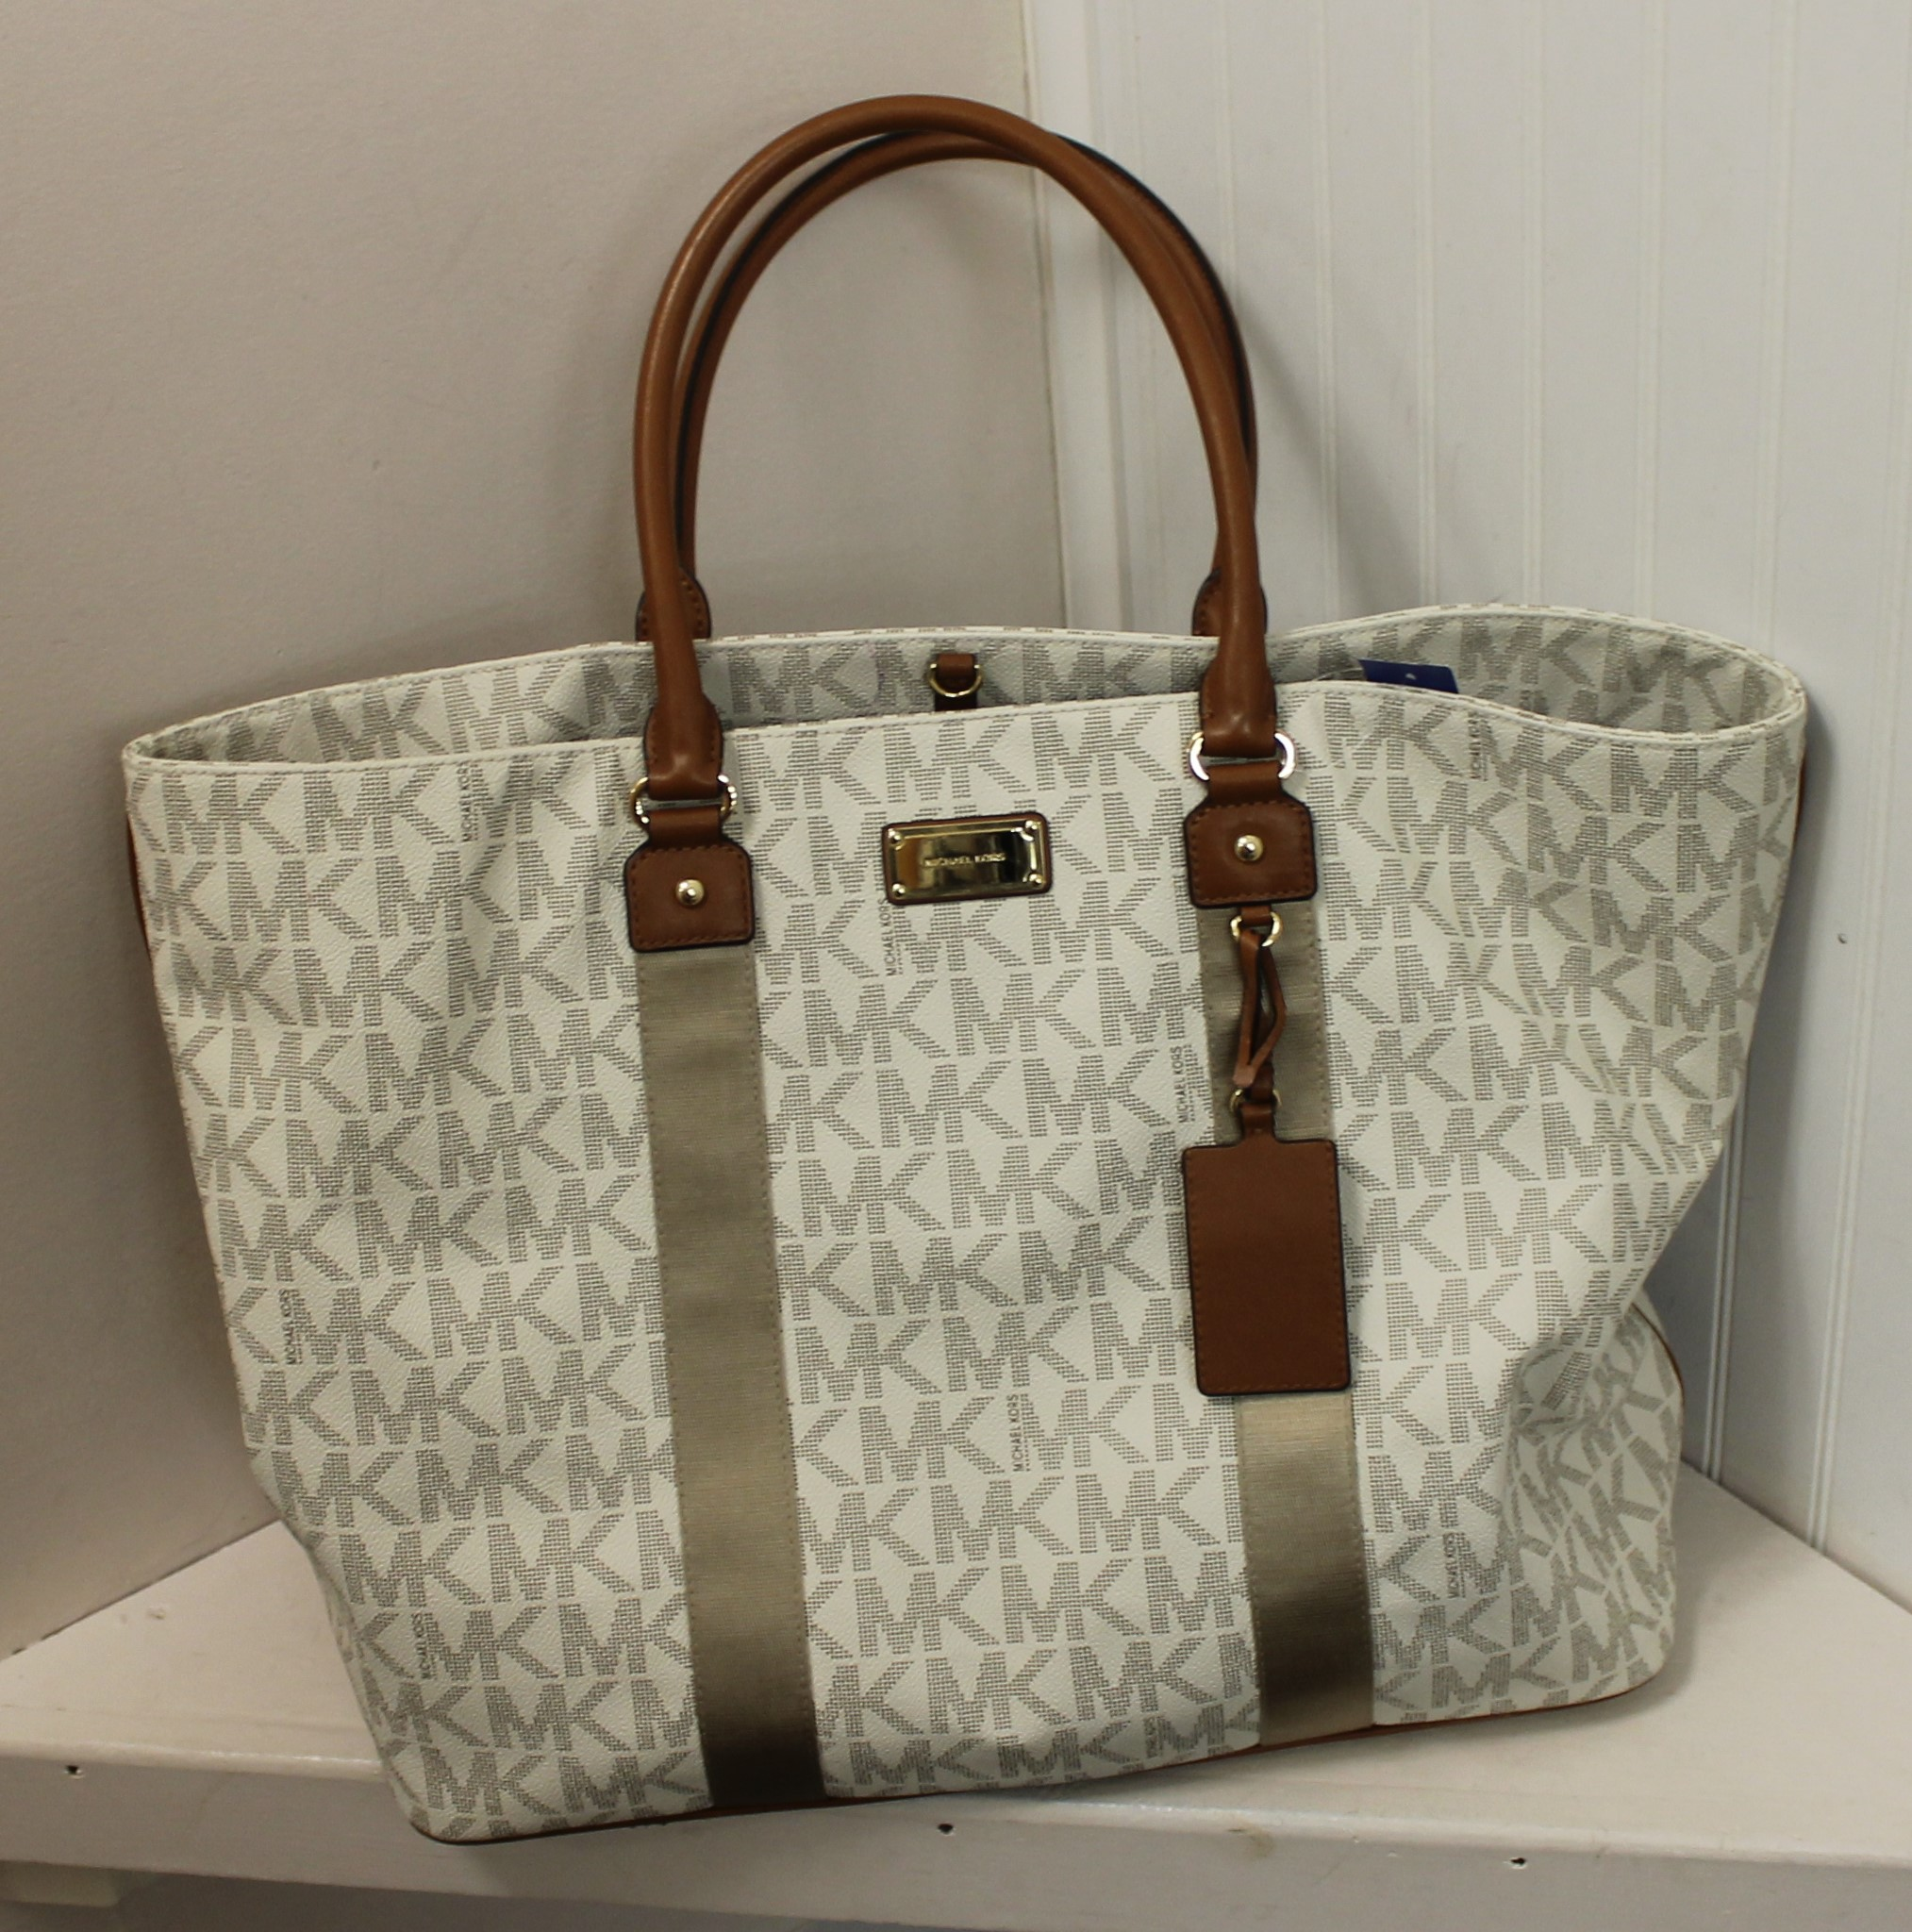 MICHAEL-KORS-WHITE-BROWN-GRAY-LEATHER-AND-CANVAS-LOGO-TOTE_69120C.jpg